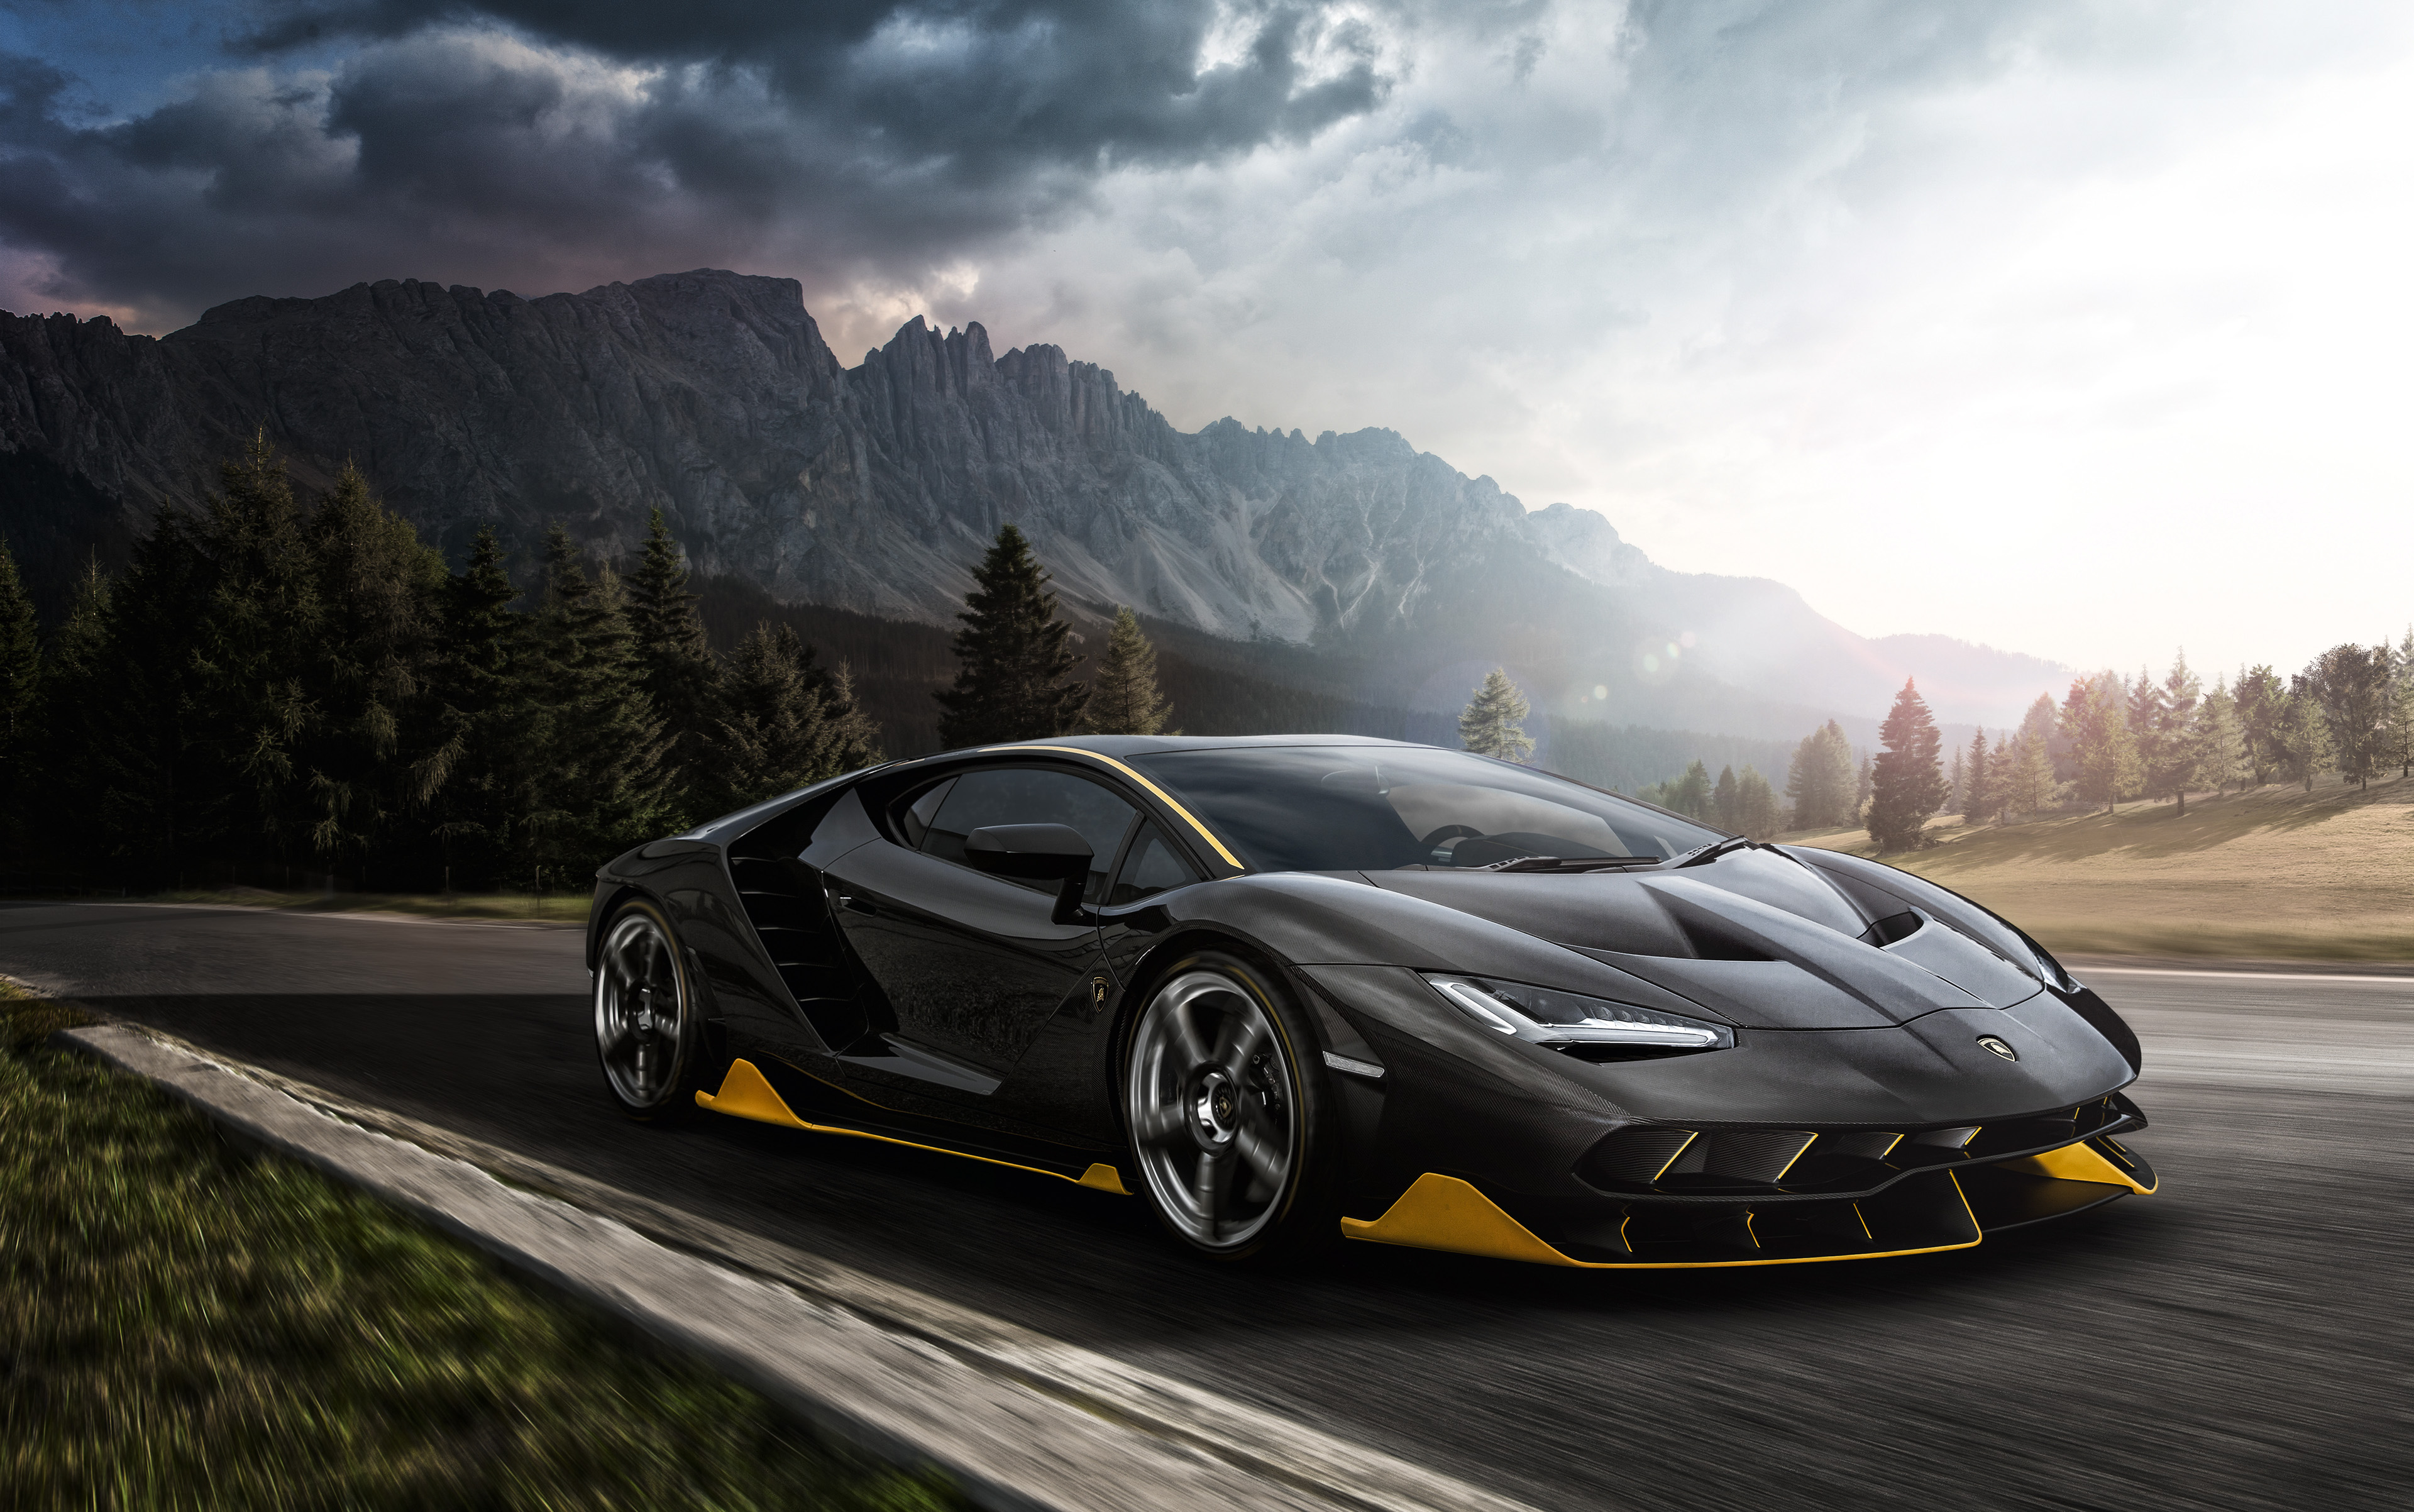 Black Lamborghini Aventador 4k 2018 Hd Cars 4k Wallpapers Images